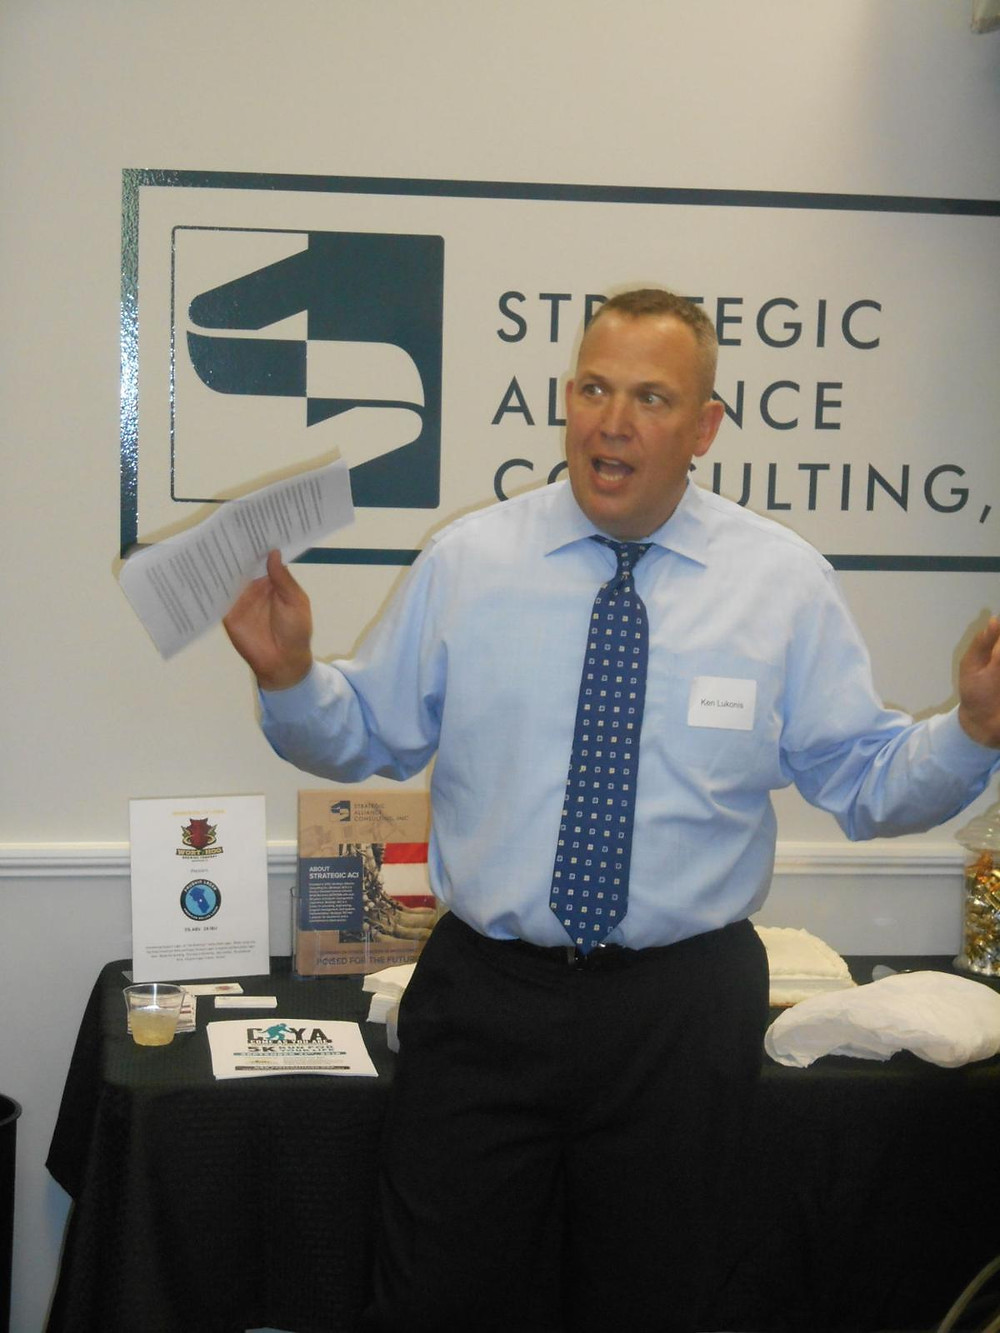 Strategic ACI's CEO addressing crowd at recent opening of new office.